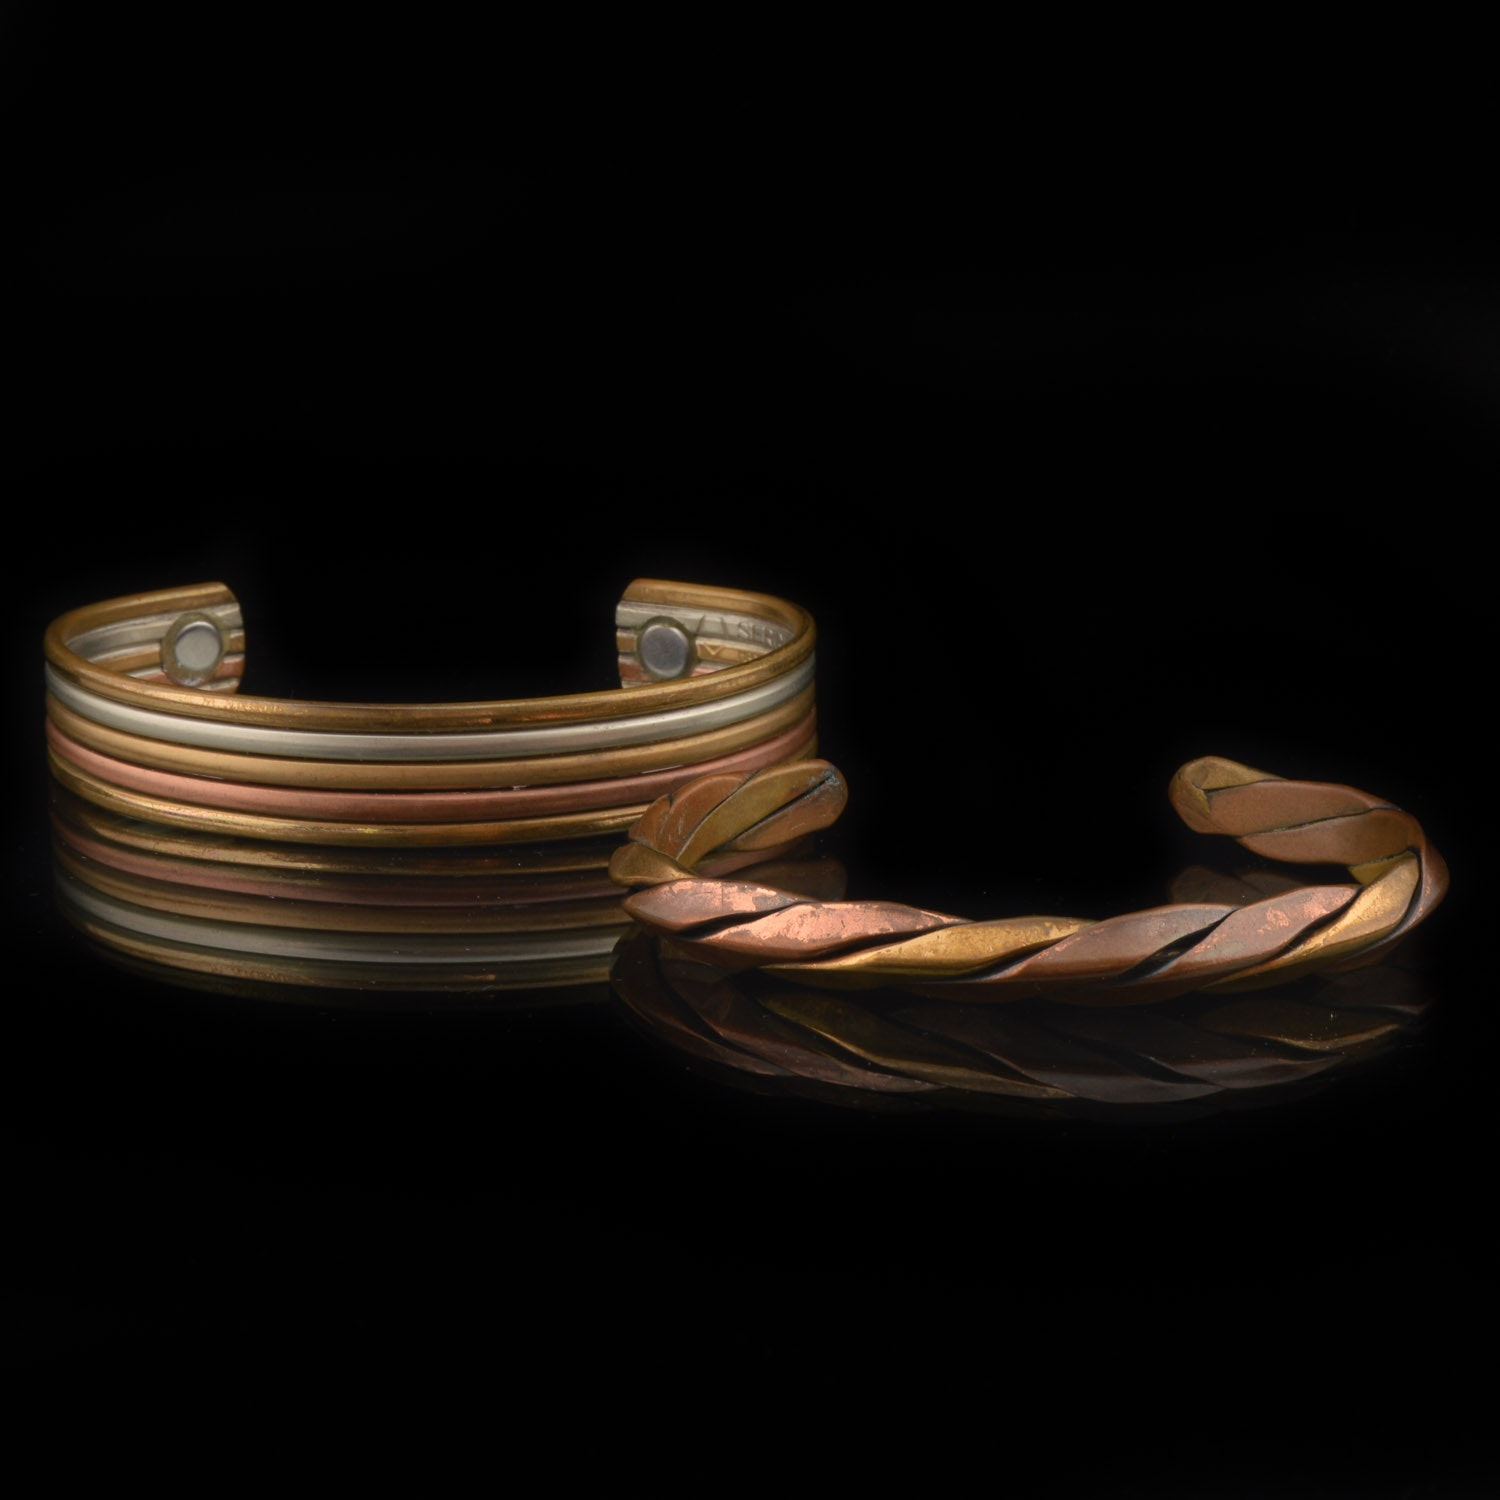 Copper and Brass Cuff Bracelets